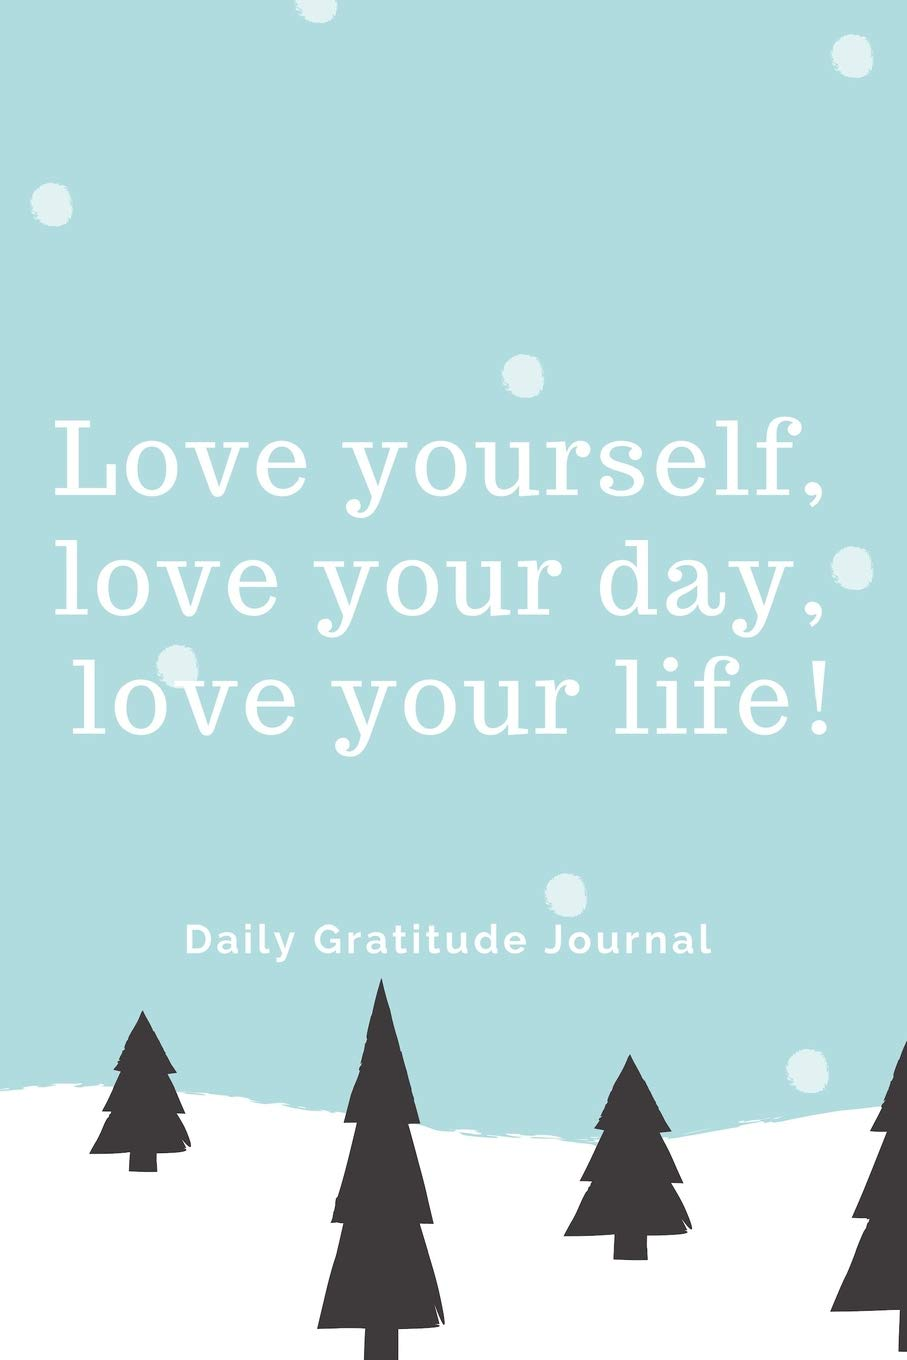 Love Yourself Love Your Day Love Your Life Winter Daily Gratitude Journal With Inspirational Quotes 4 Seasons Of Thanks Human Editions 9781731313973 Amazon Com Books